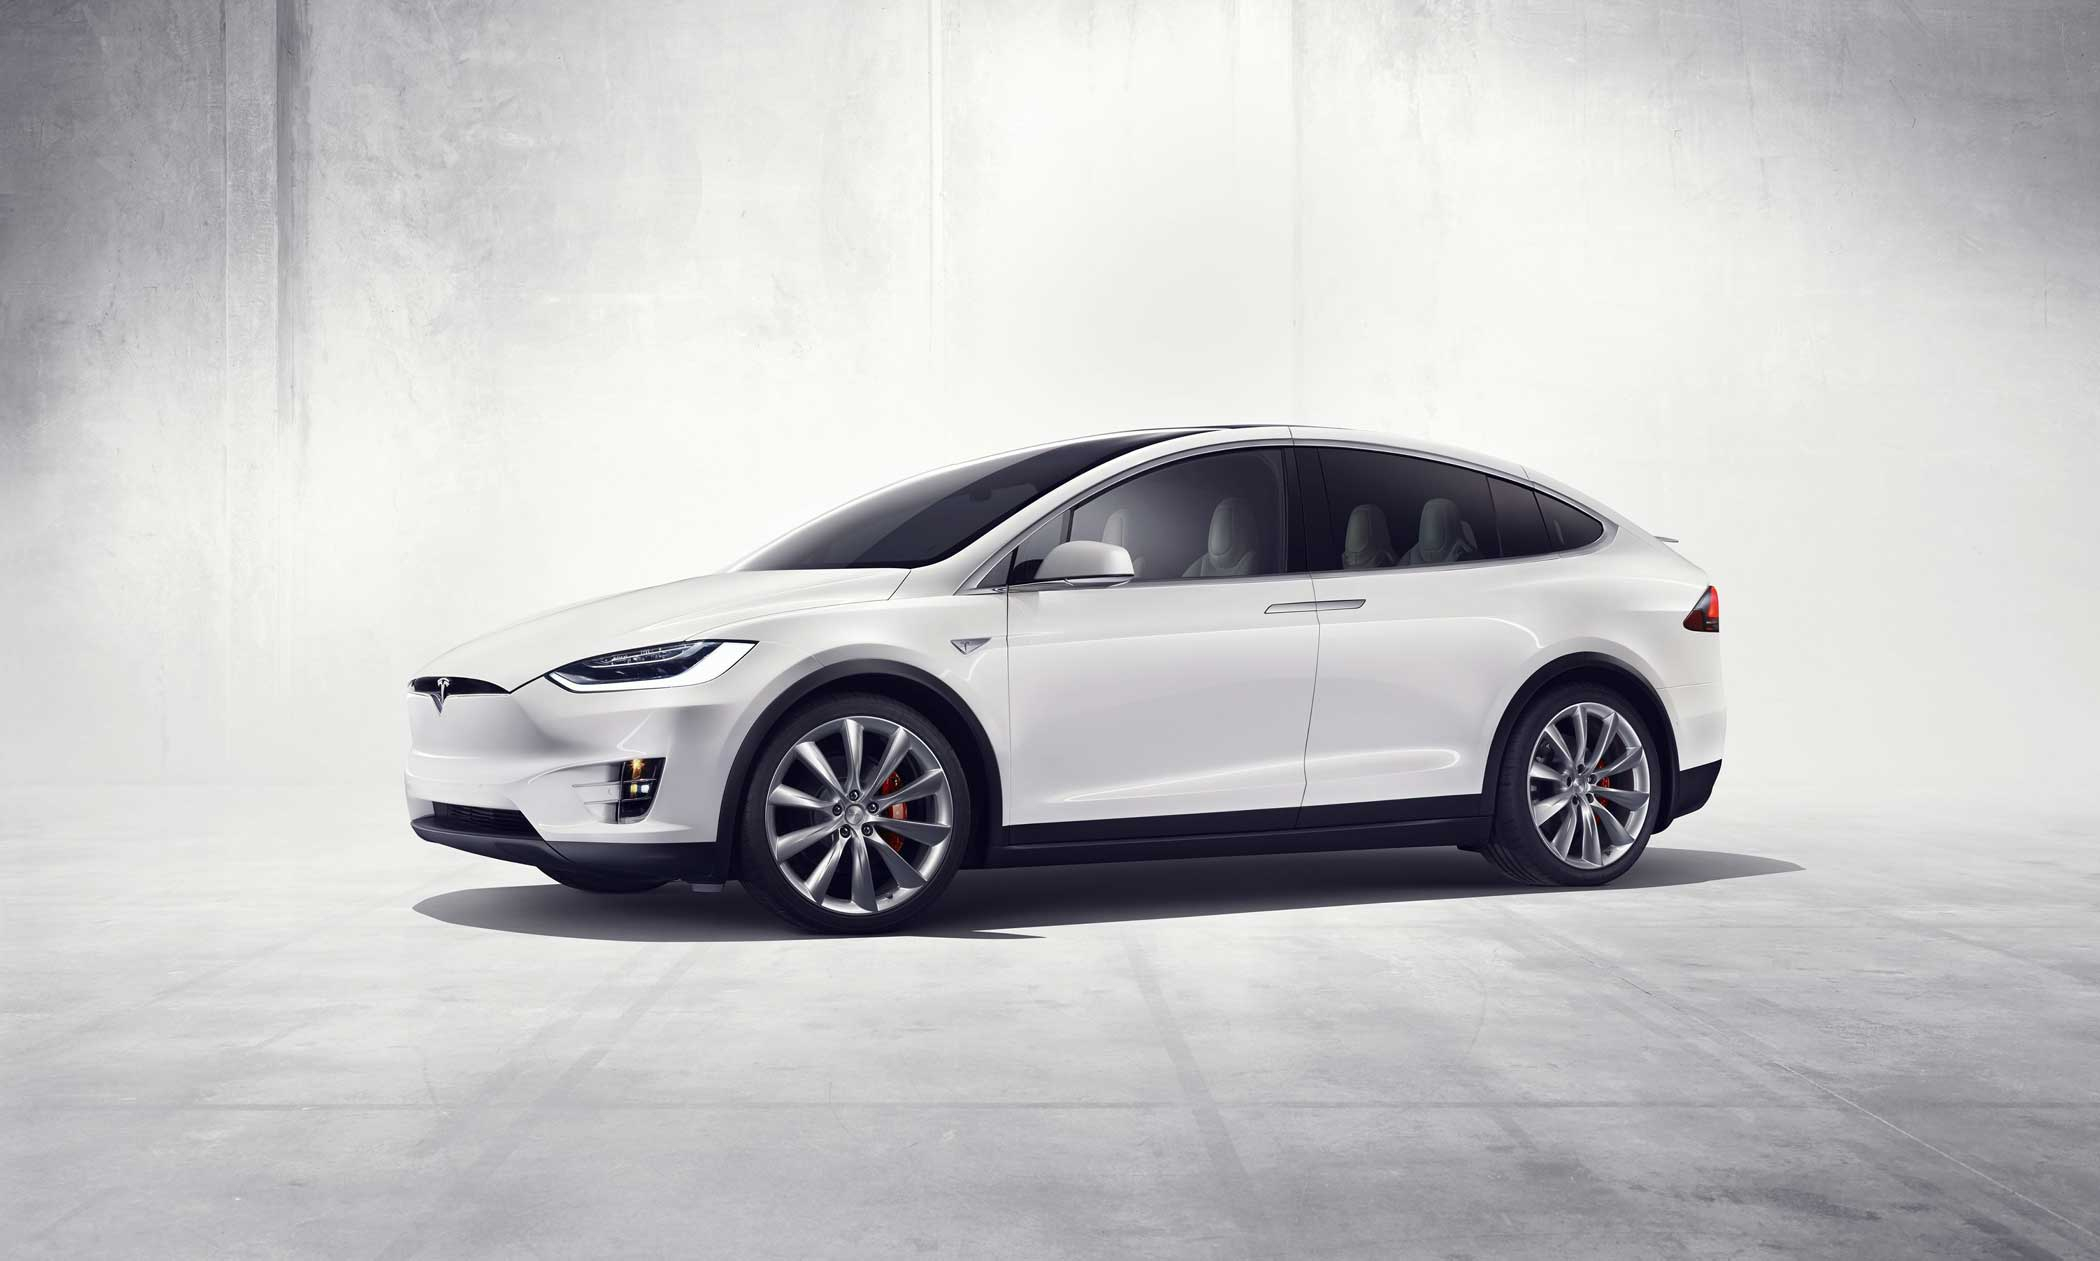 Electric car maker Tesla Motors launched its first sport-utility vehicle, the Model X, in Fremont, California, Sept. 2015.